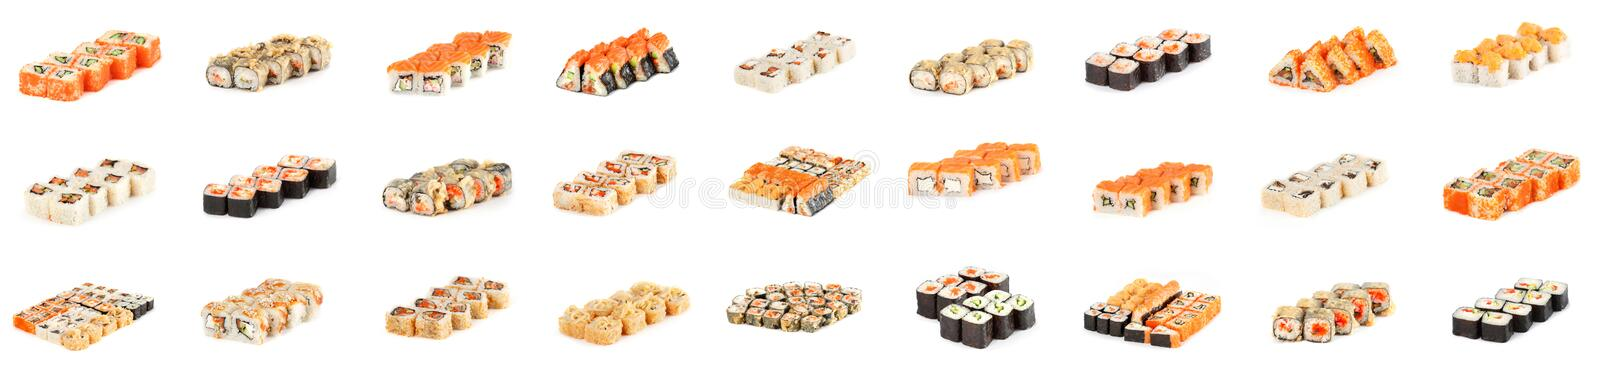 Sushi Roll - Maki Sushi pieces collection with Salmon Roe, Smoked Eel, Cucumber, Cream Cheese, Sesame, Avocado, Onion Fries, Crab. Meat, Tobiko isolated on royalty free stock photos